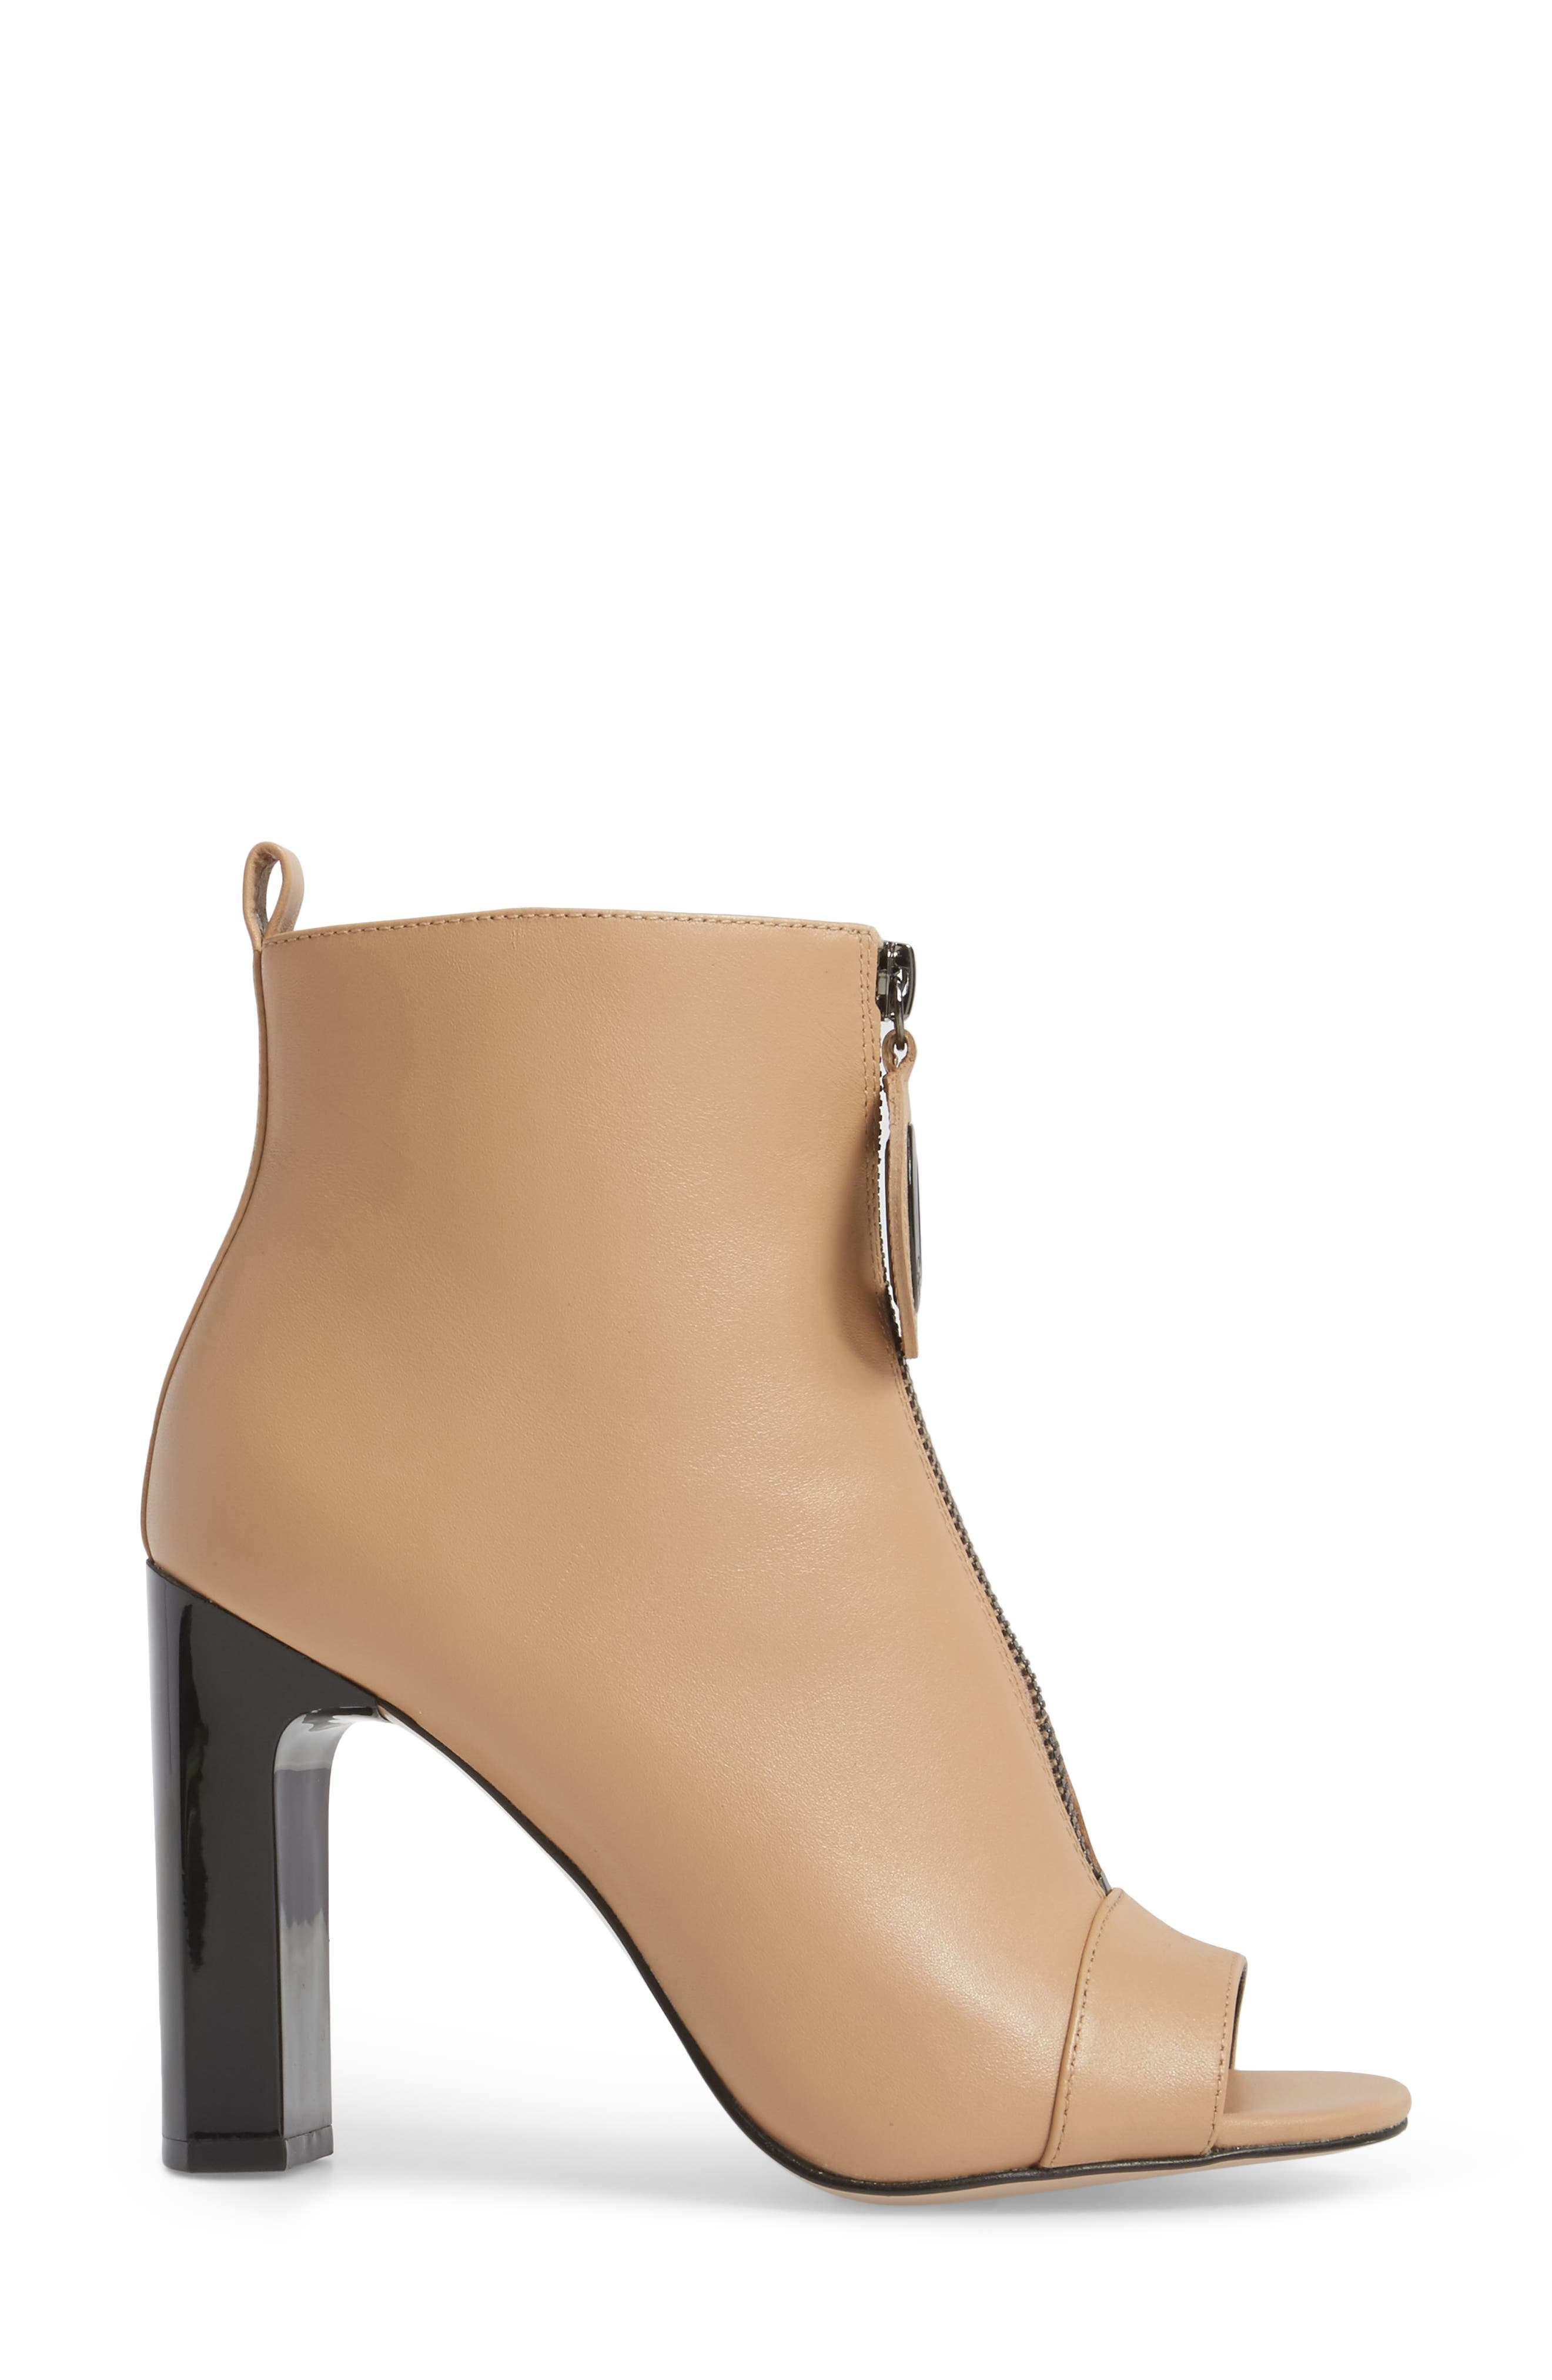 Minda Open Toe Bootie,                             Alternate thumbnail 3, color,                             Sandstrom Leather